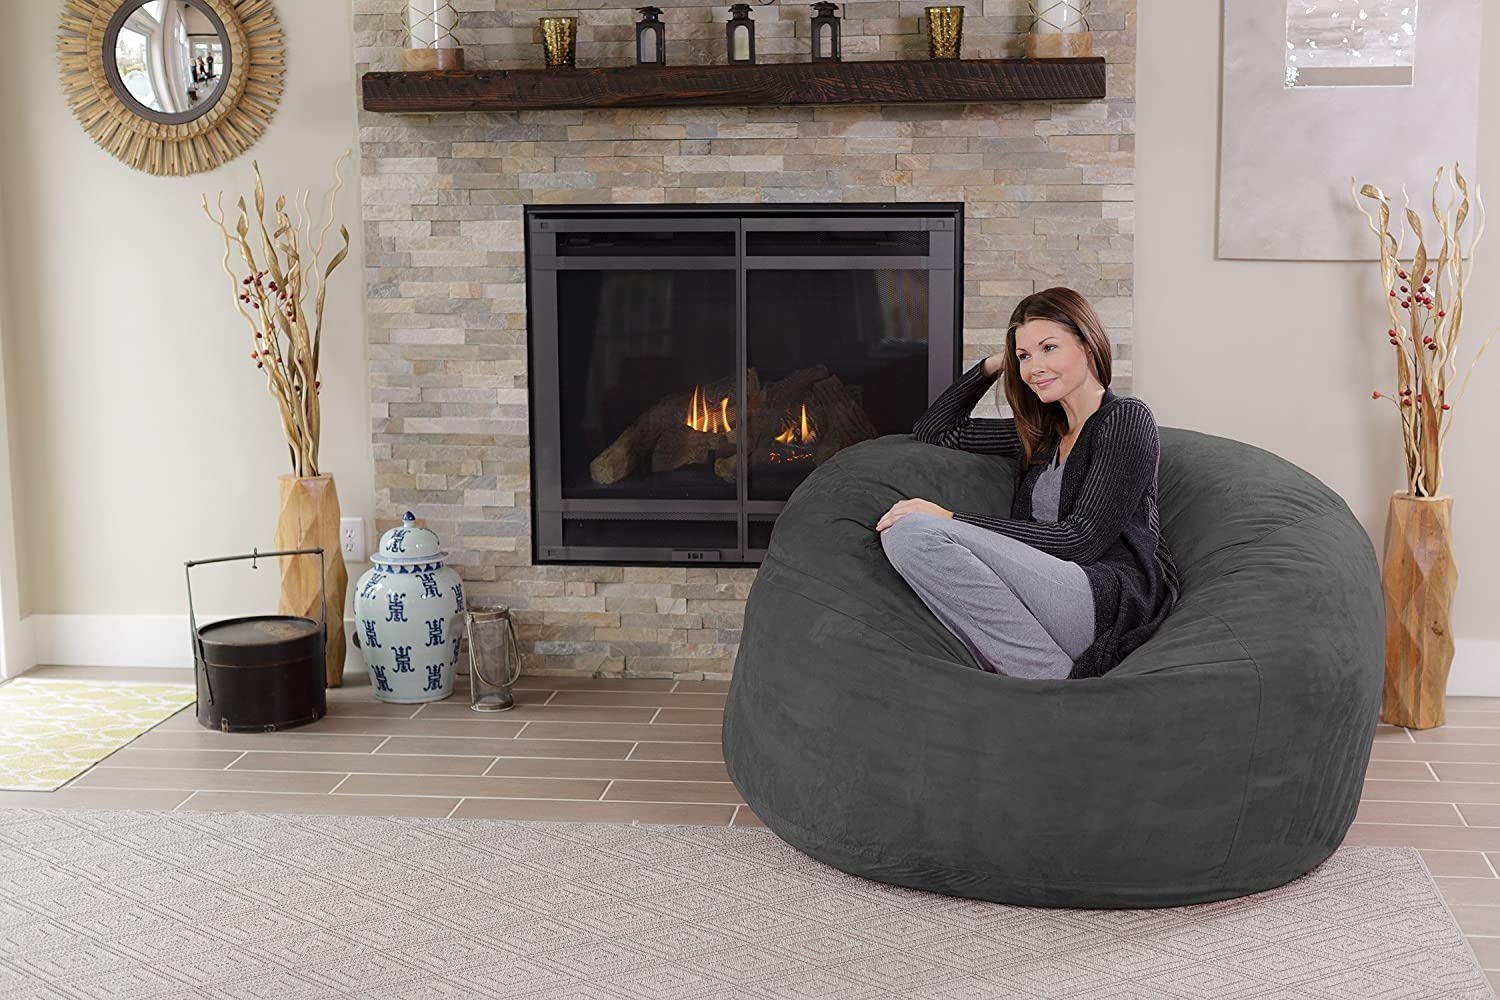 Chill Love Sack Adult Bean Bag Chair Giant 5 Memory Foam